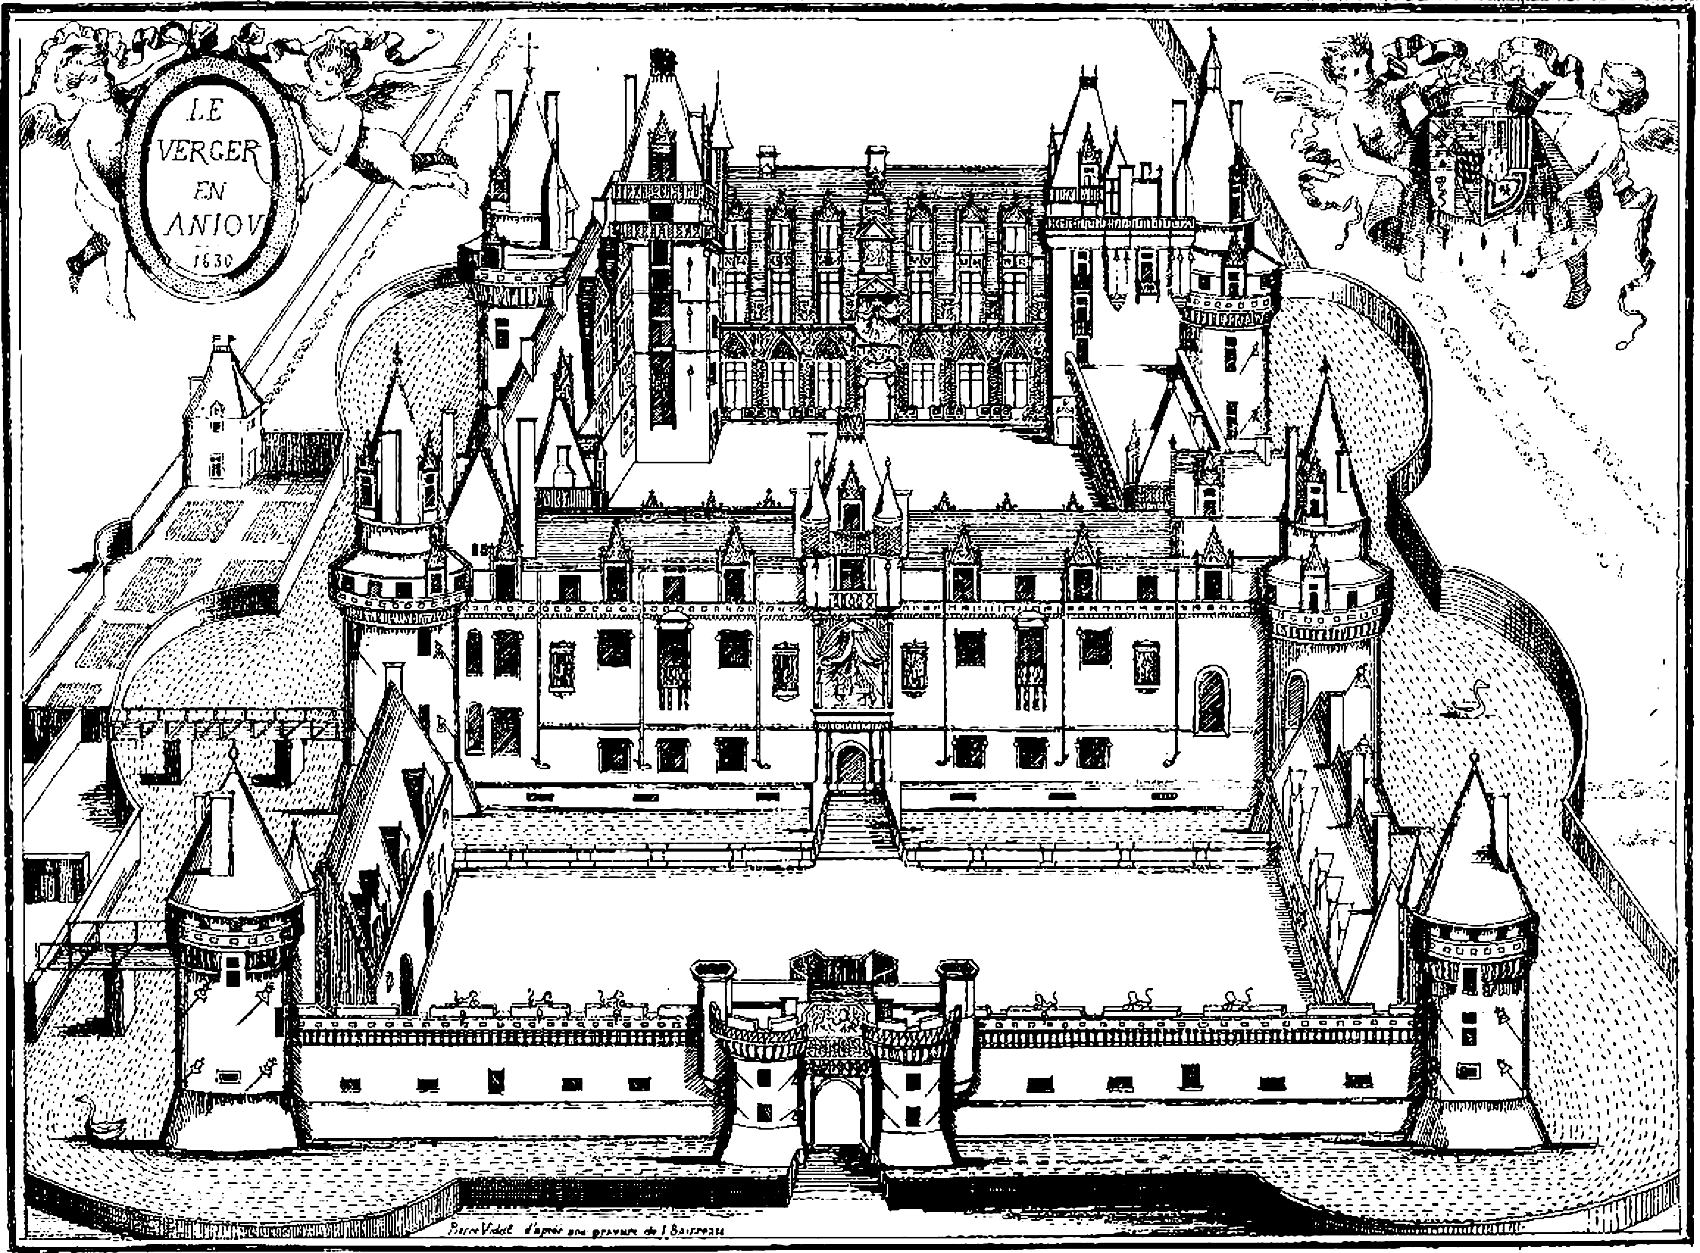 Coloring Pages For Adults Castle : Royal coloring pages for adults castle verger